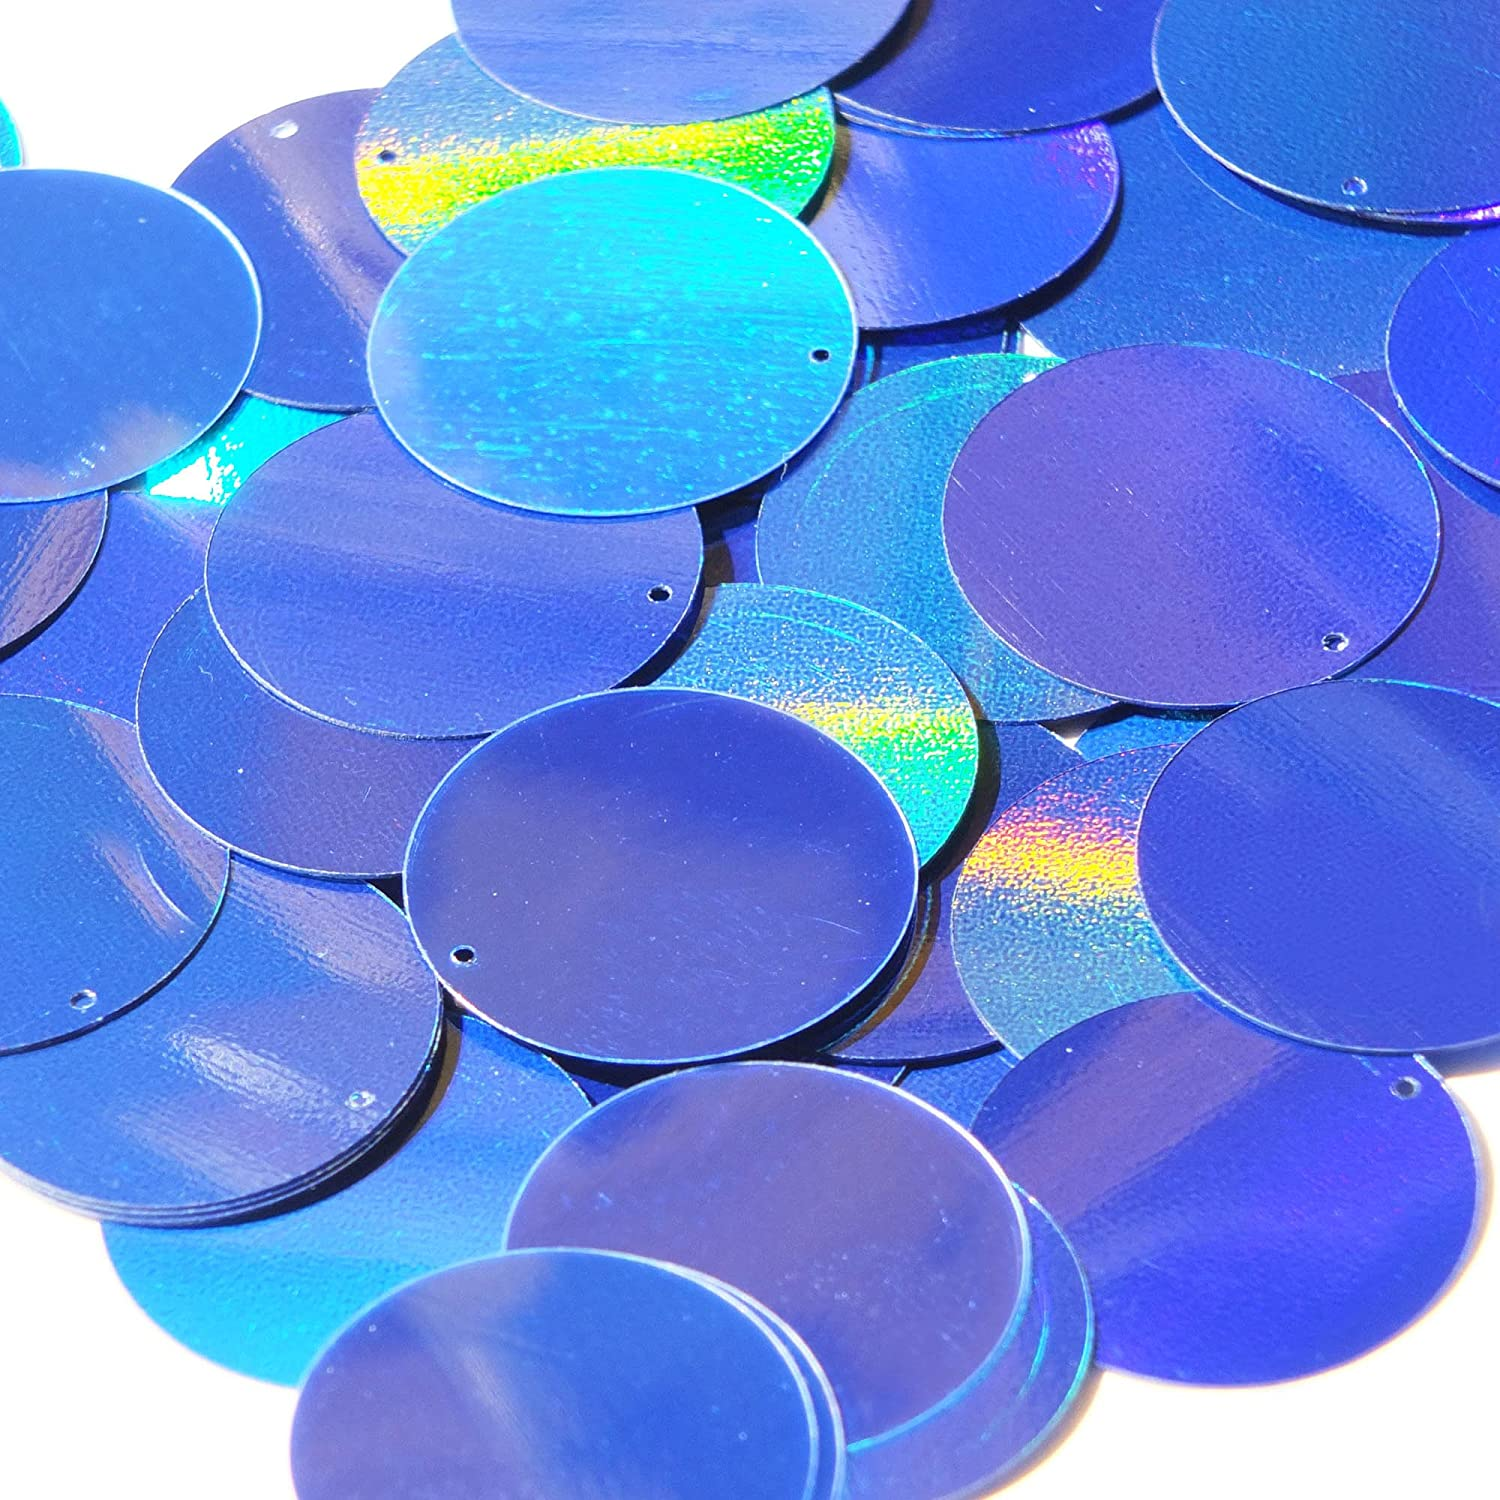 Blue Lazersheen Round 40mm Couture Sequin Paillettes. Made in USA. Loose sequins for embroidery, bridal, applique, arts, crafts, and embellishment.